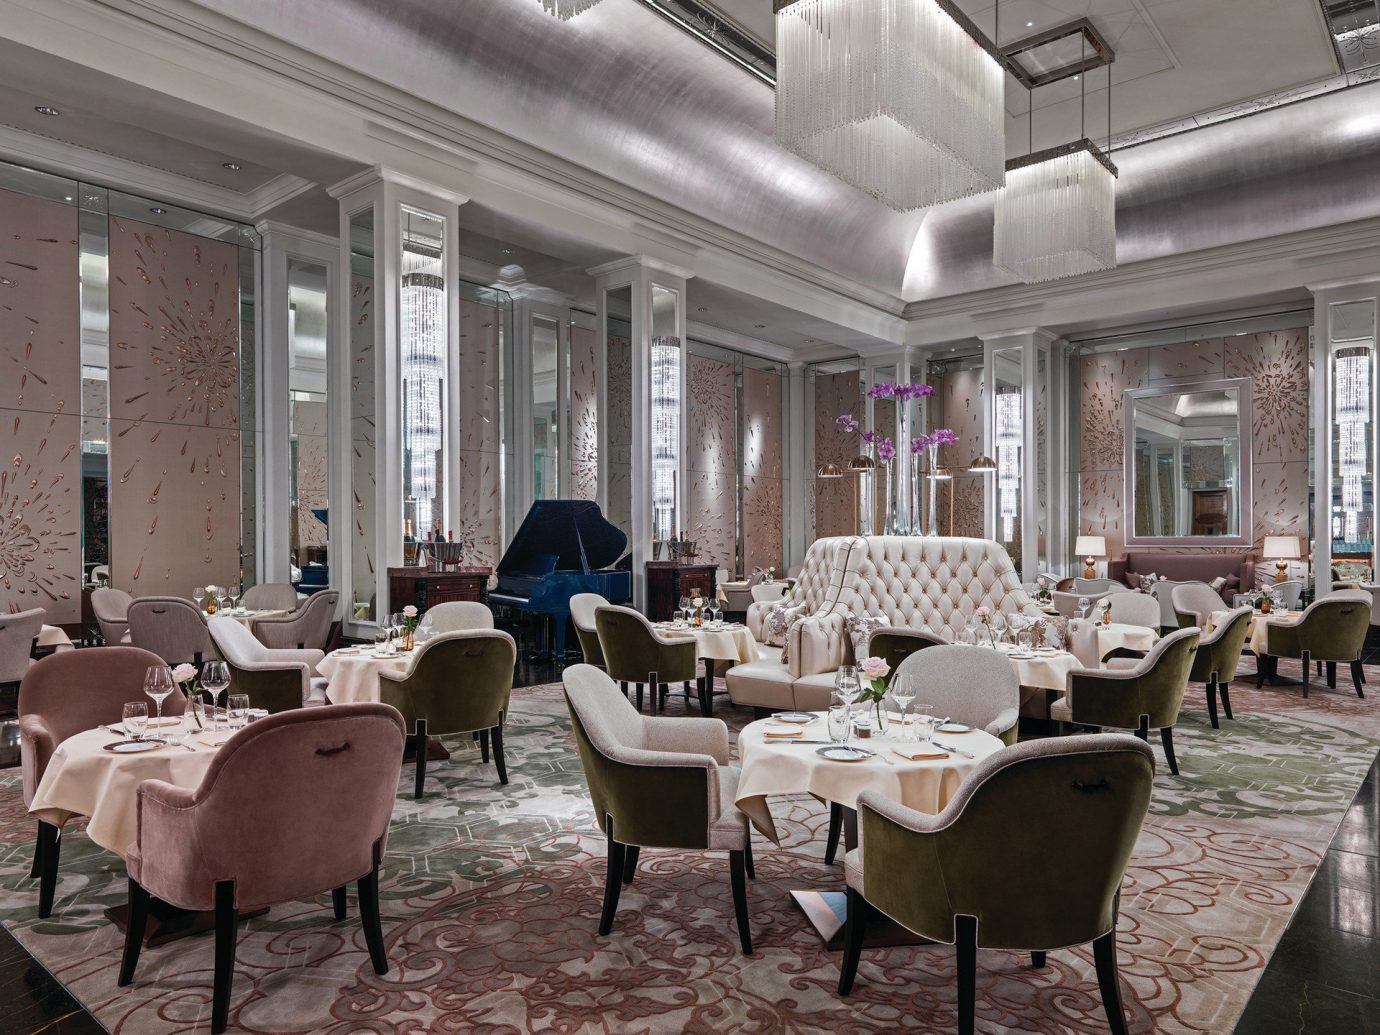 Hotels London Luxury Travel indoor floor window chair room restaurant interior design estate function hall meal dining room furniture Lobby living room Design ballroom several